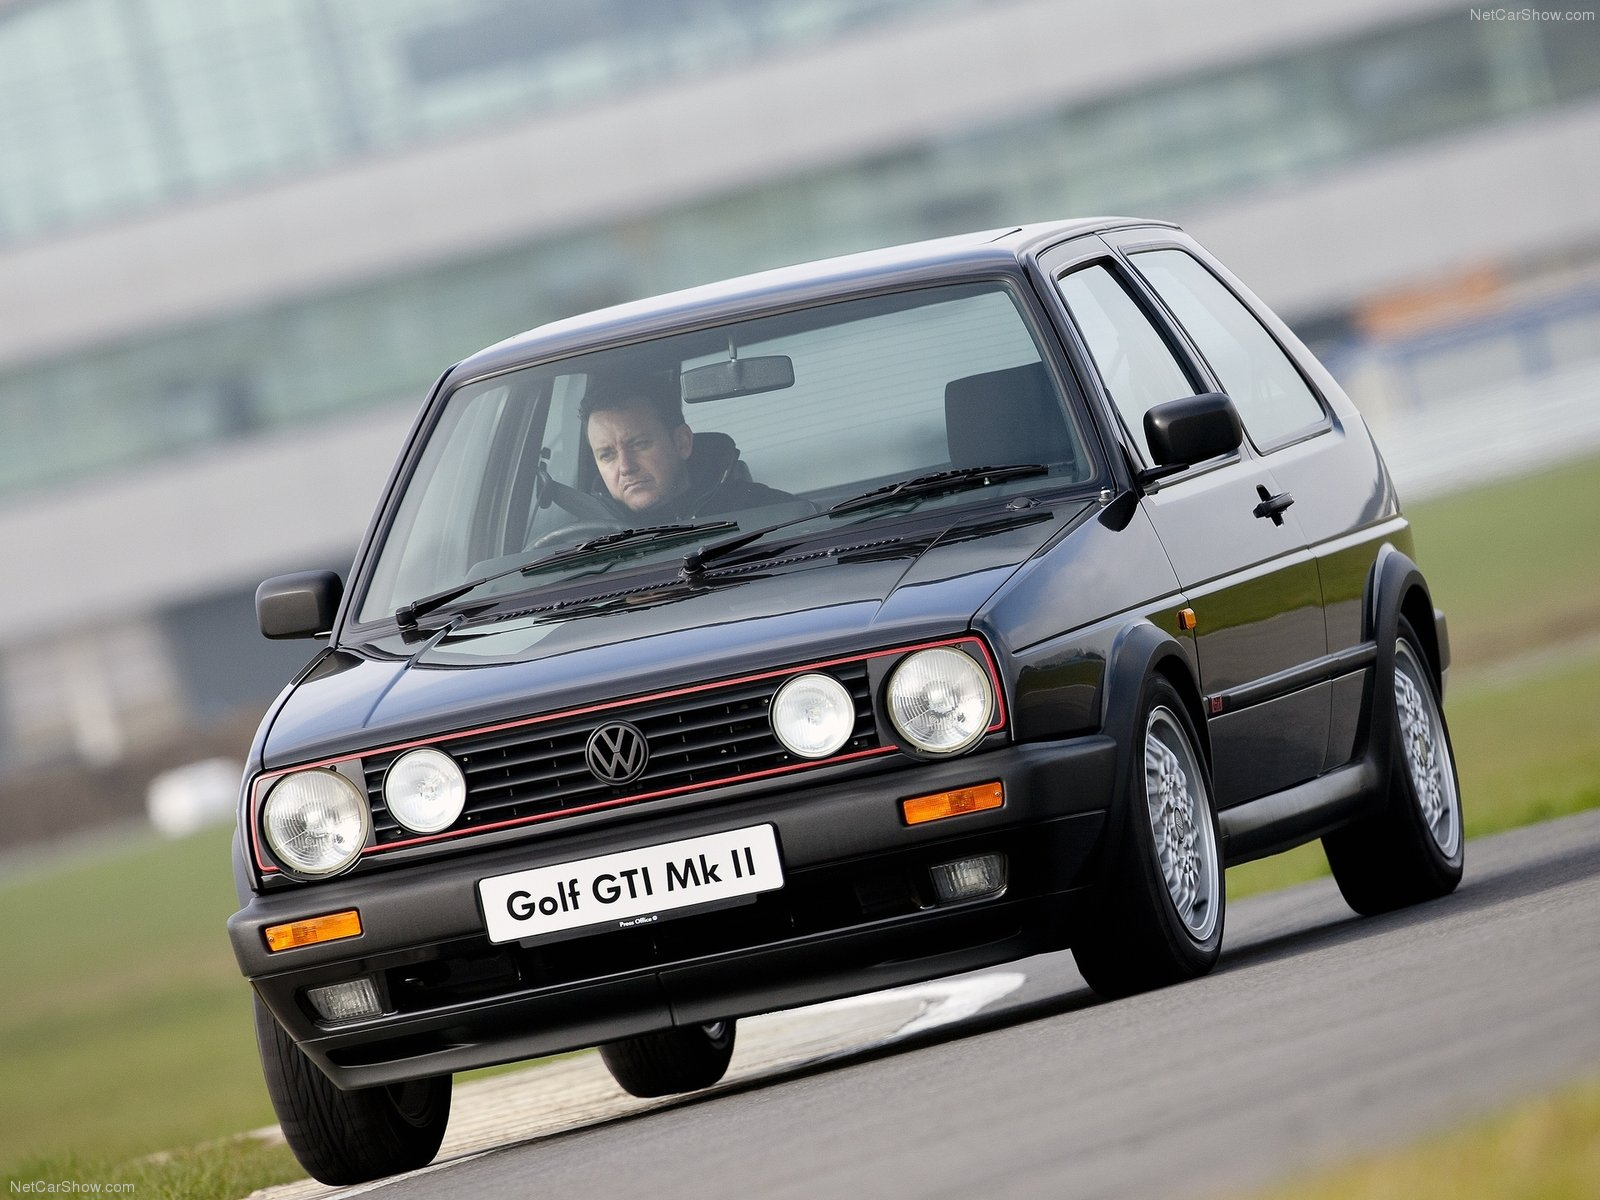 ... Volkswagen Golf 2 Gti 3 Door Hatchback 1990